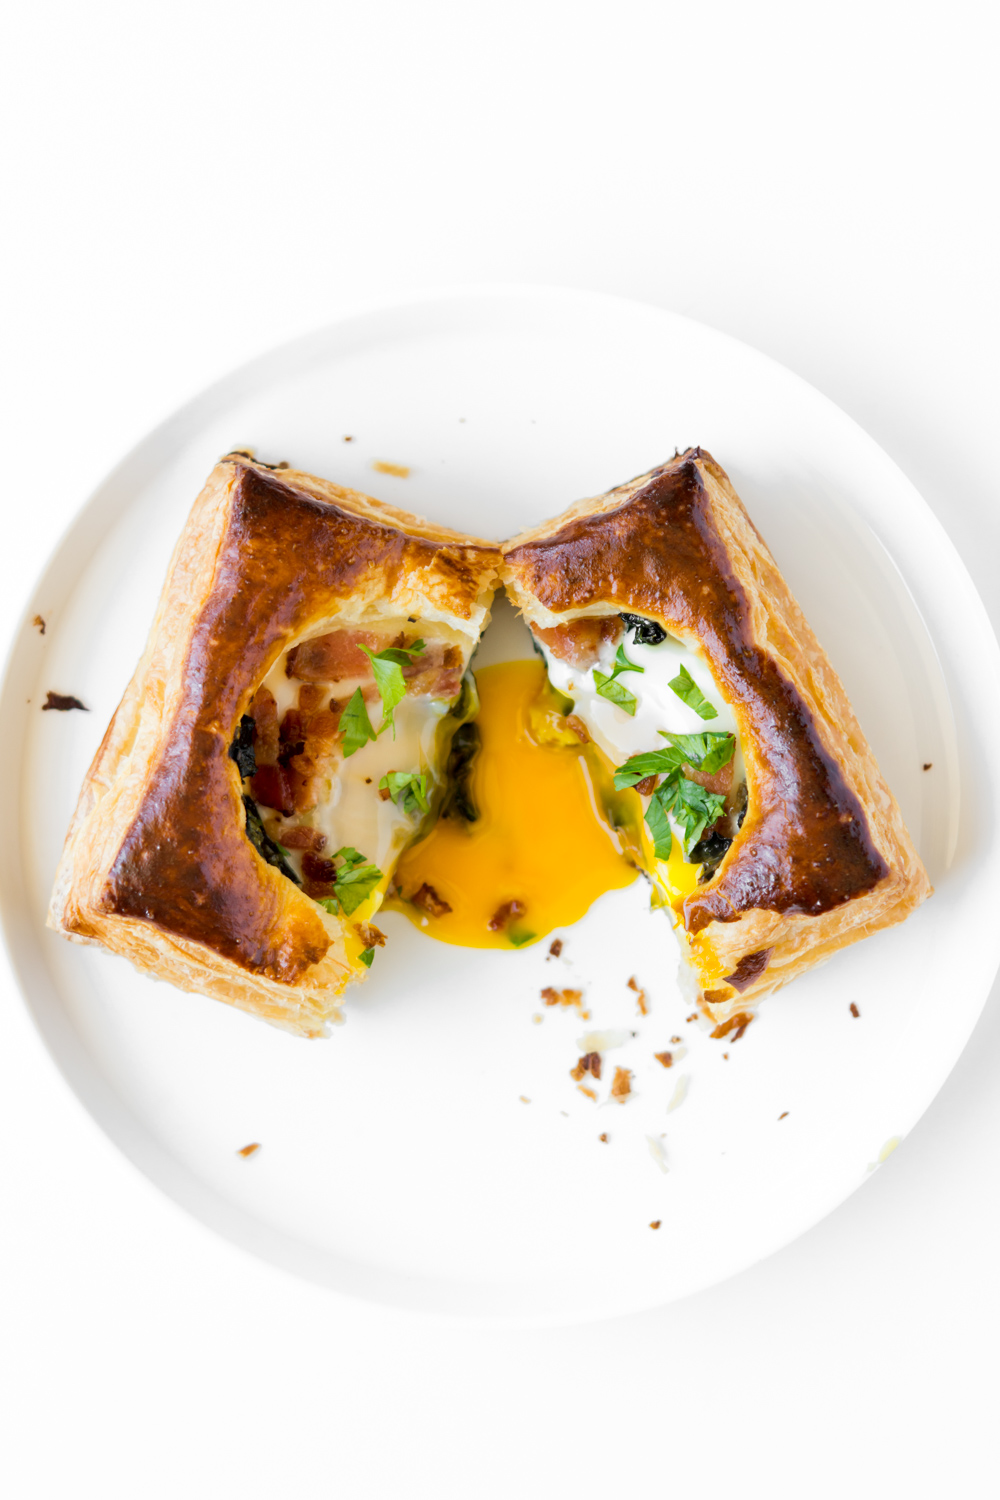 baked egg danish with kale and bacon